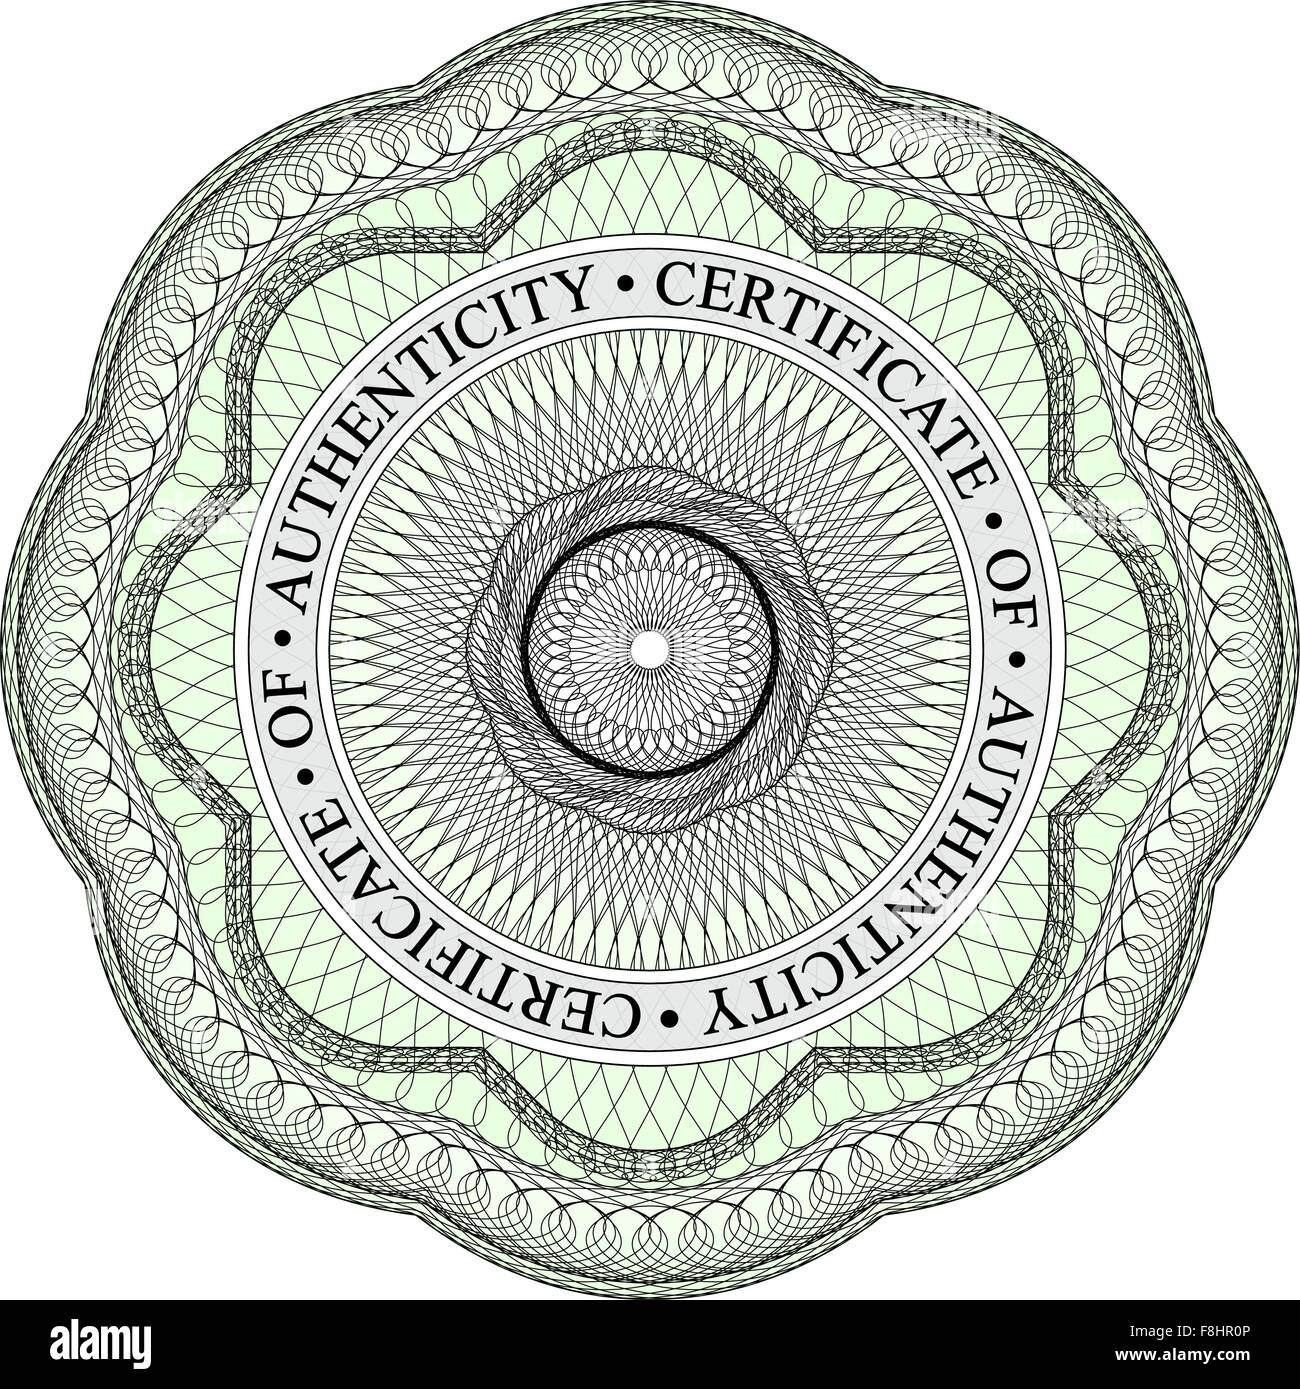 Certificate Seal Stock Photos Certificate Seal Stock Images Alamy